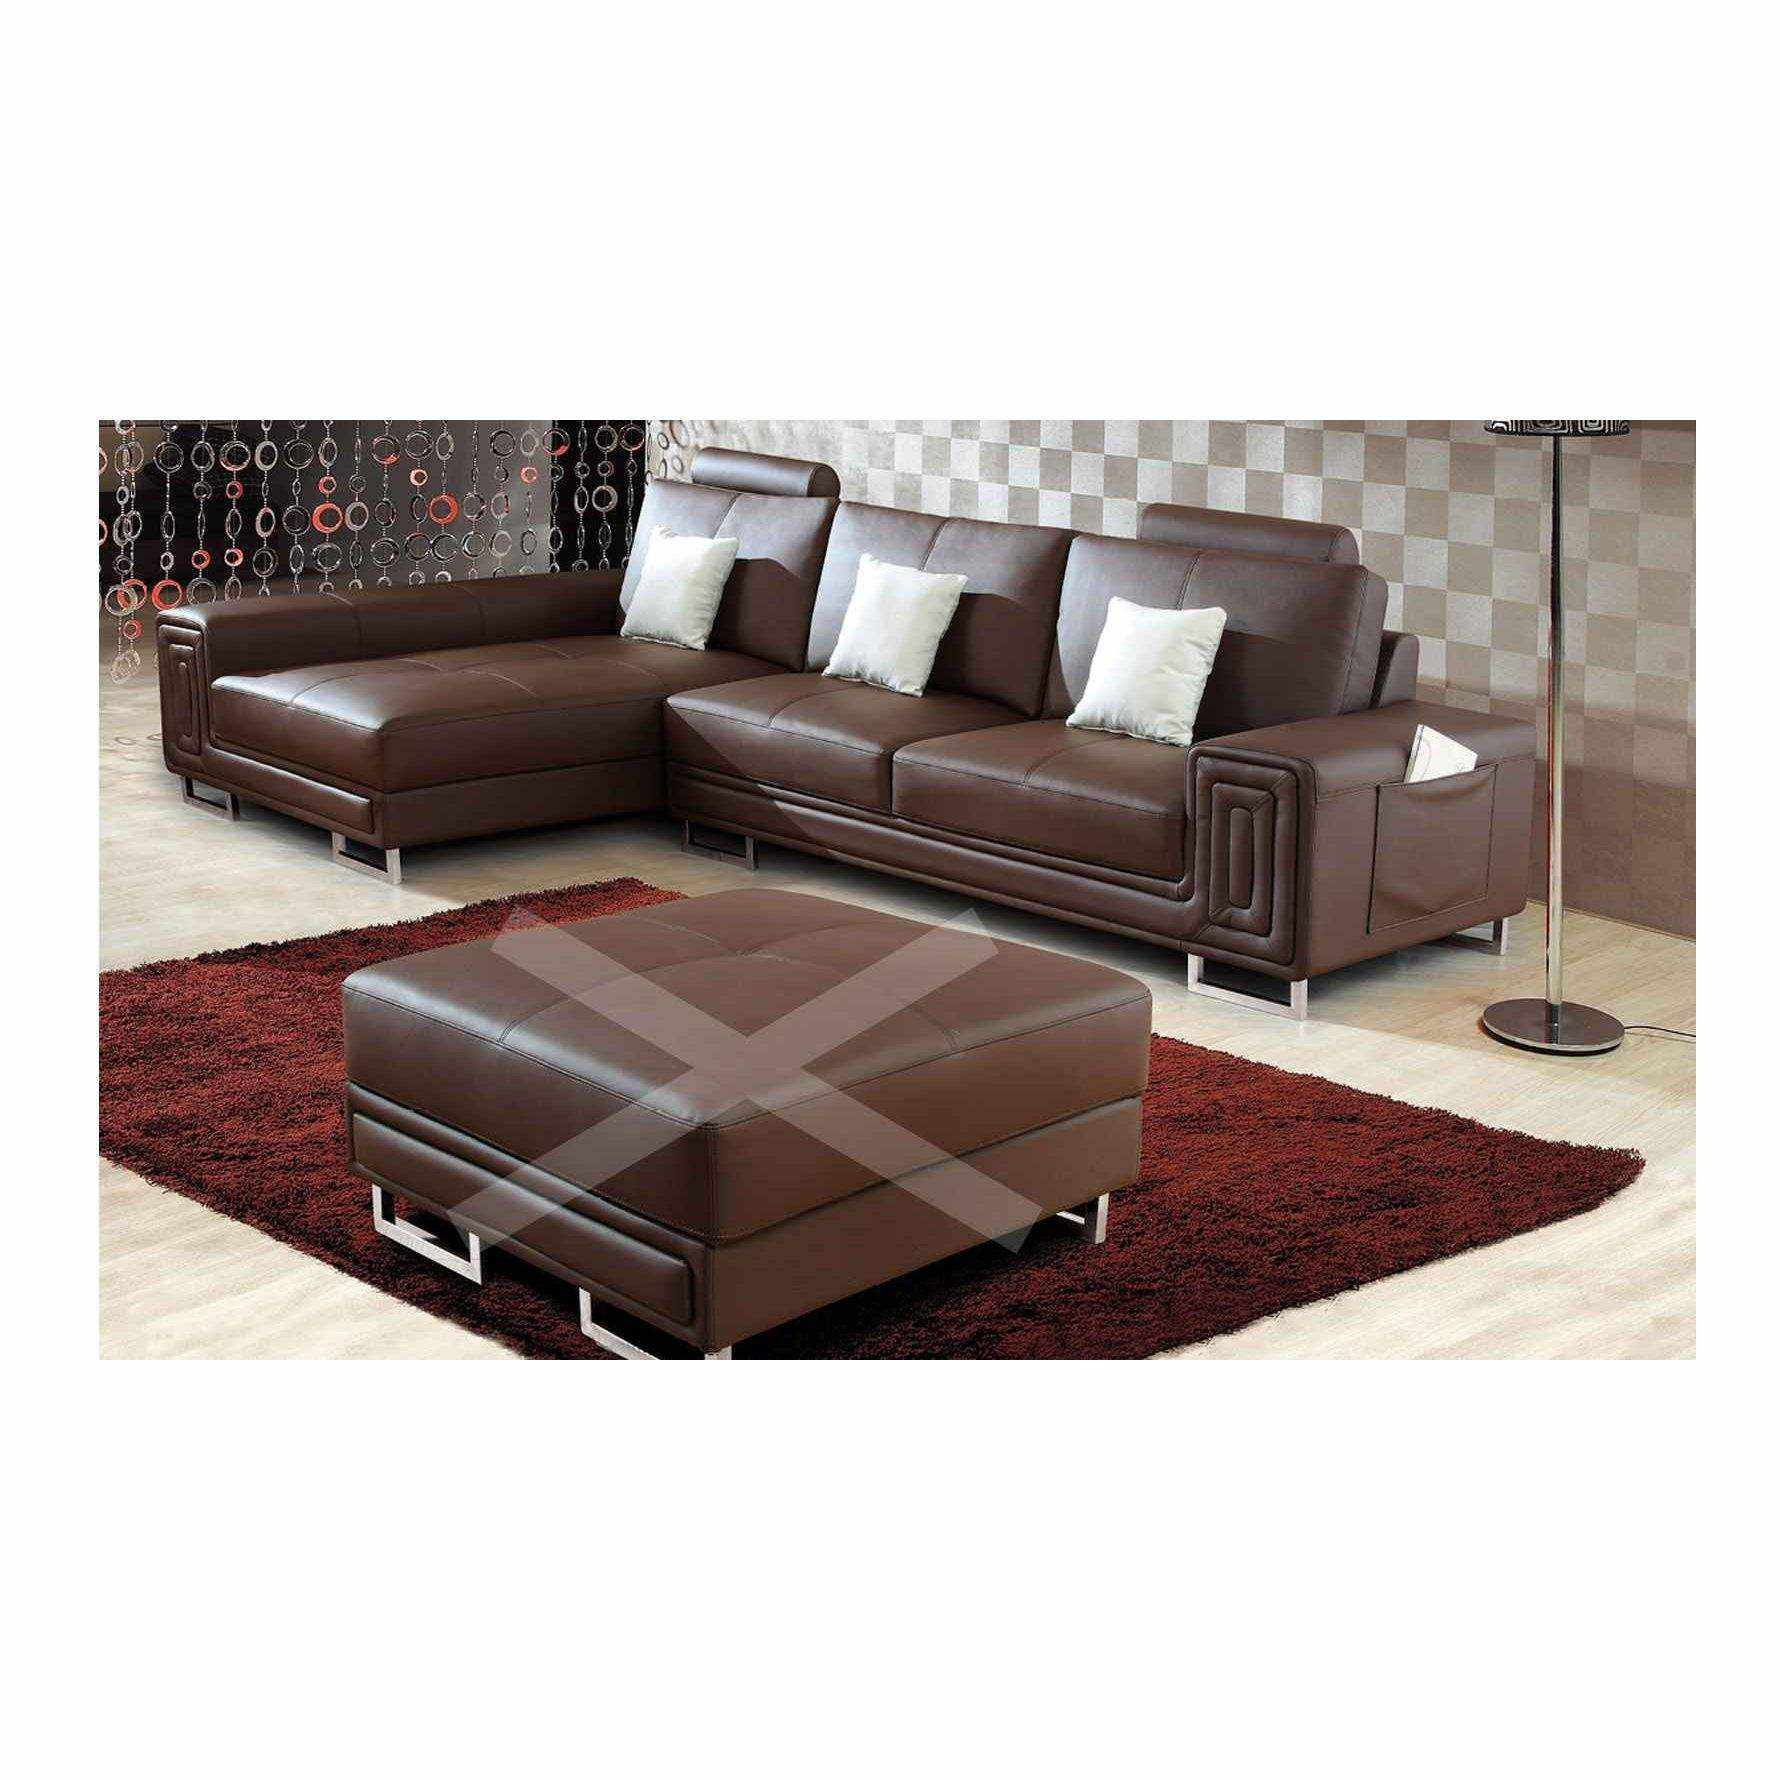 Deco in paris canape cuir d angle marron tetieres relax for Canape d angle arrondi cuir